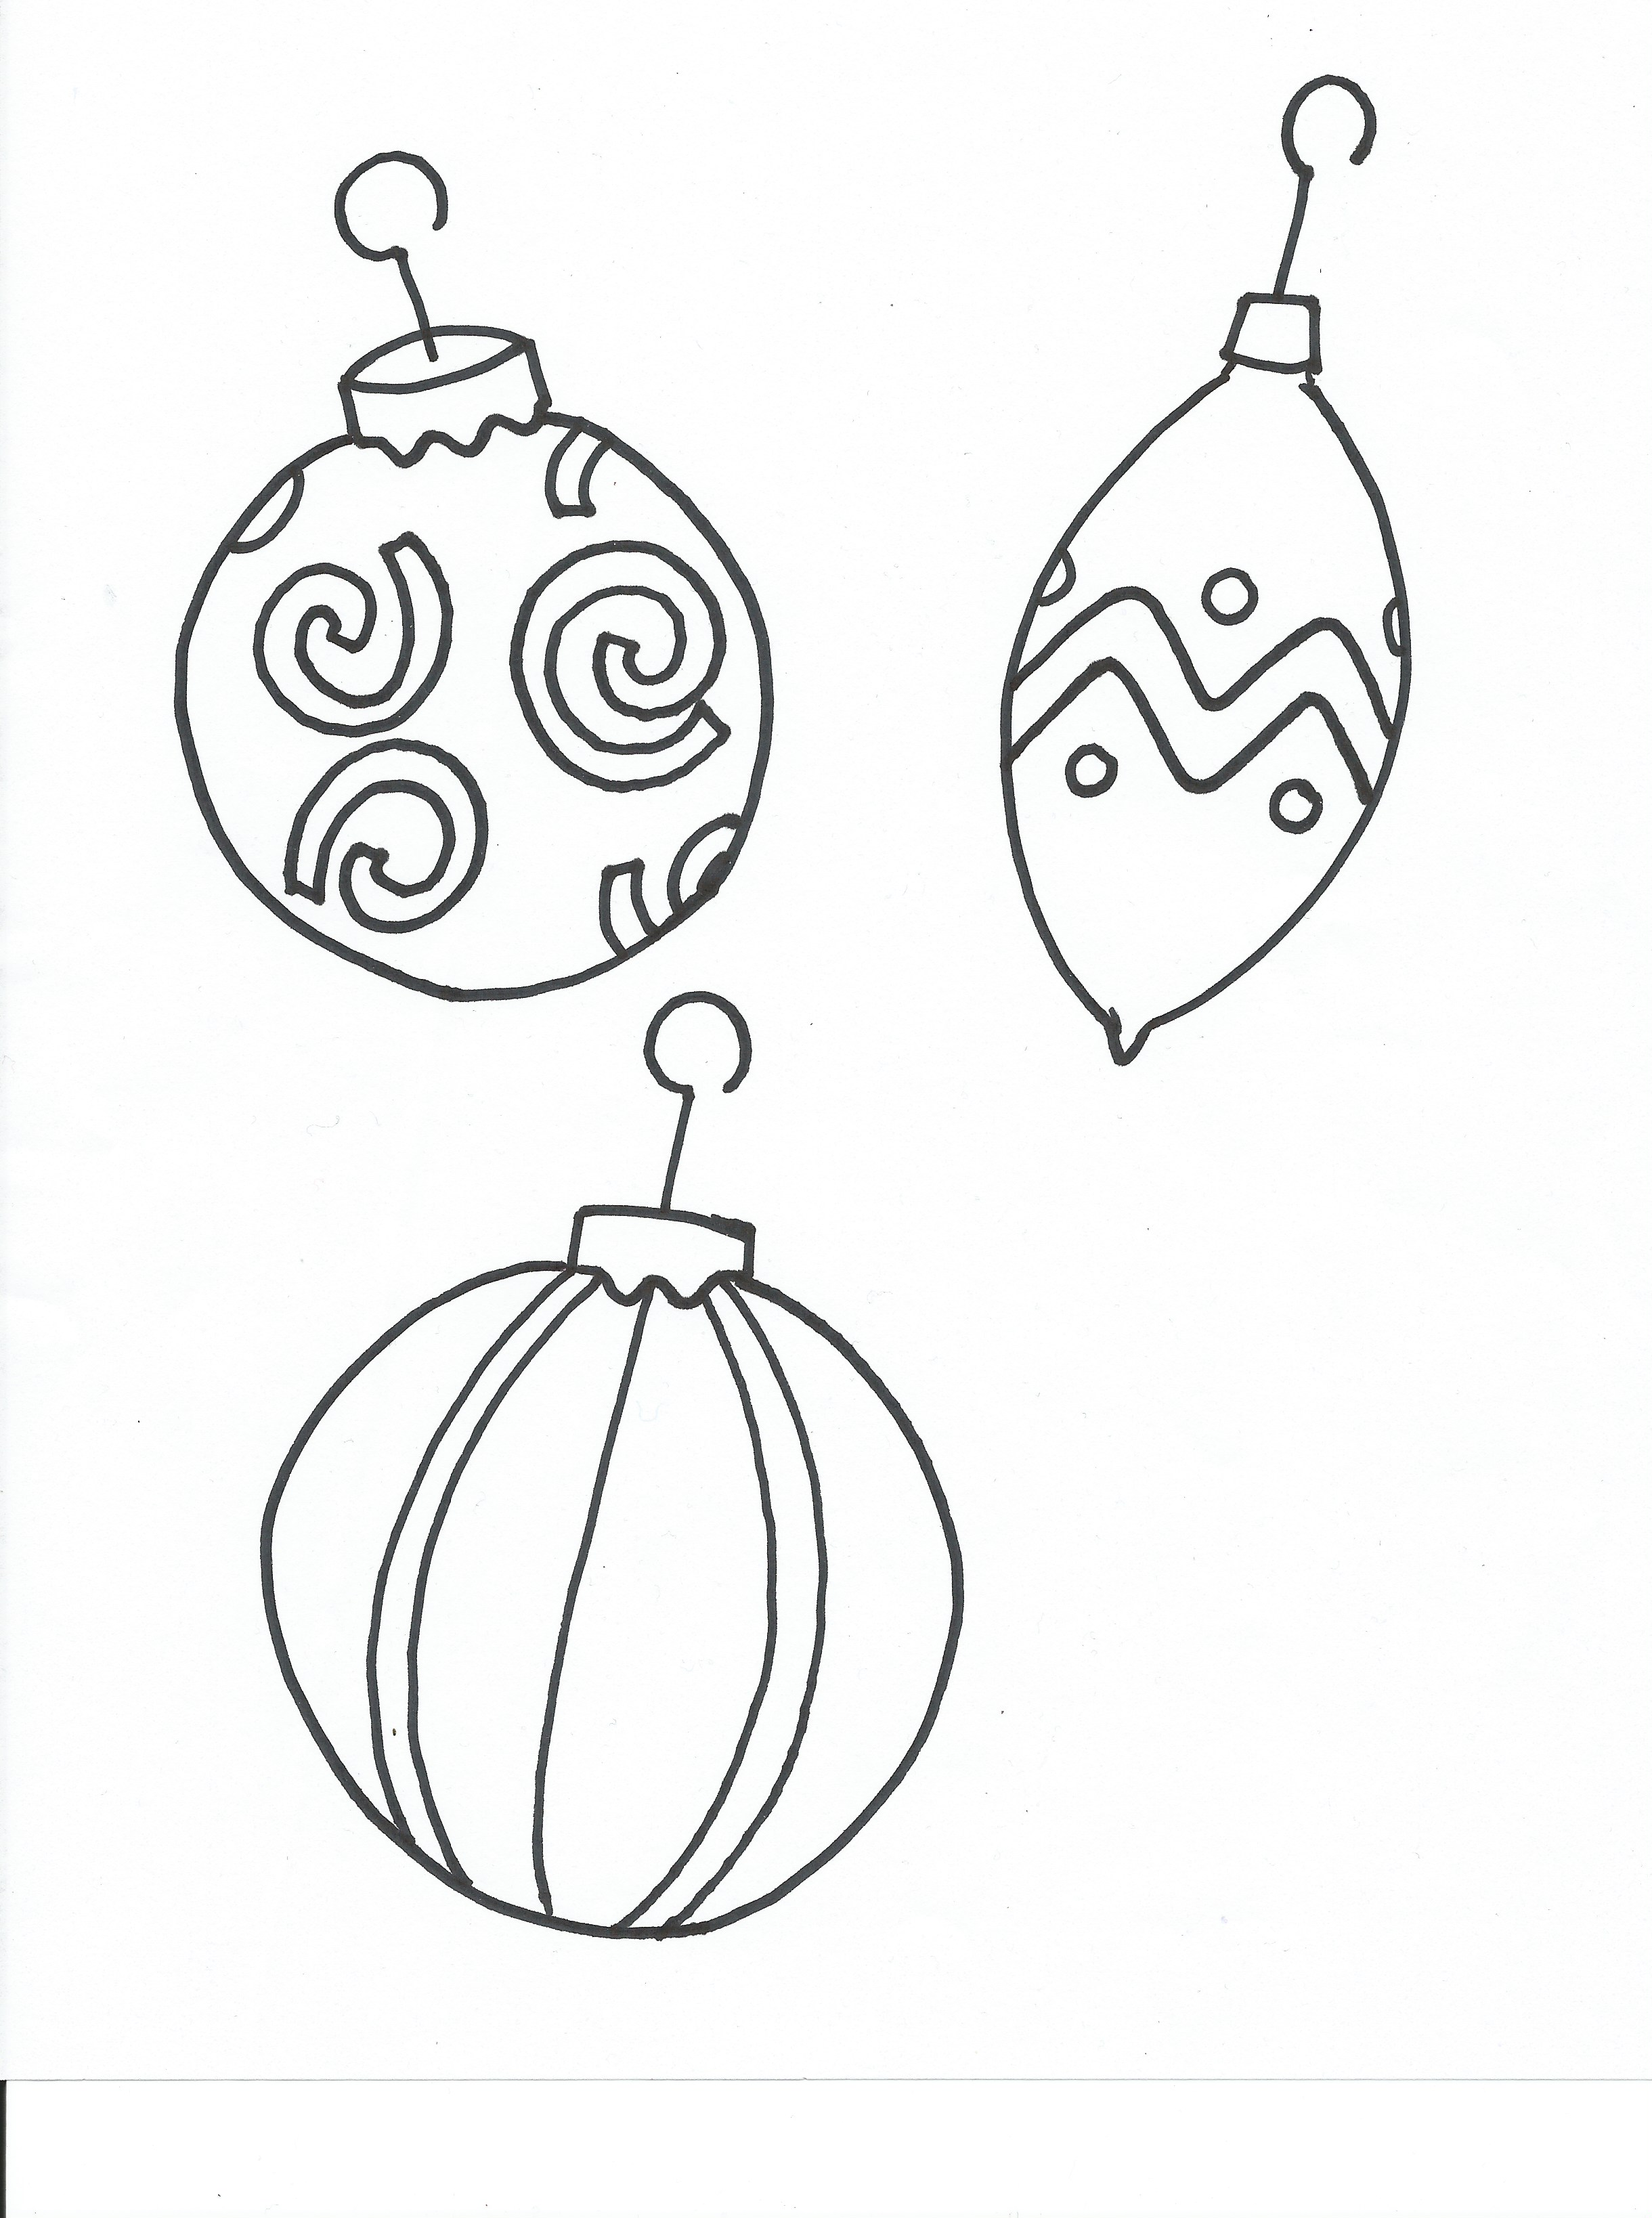 Christmas Decorations Coloring Pages New Calendar Coloring Pages For Ornaments